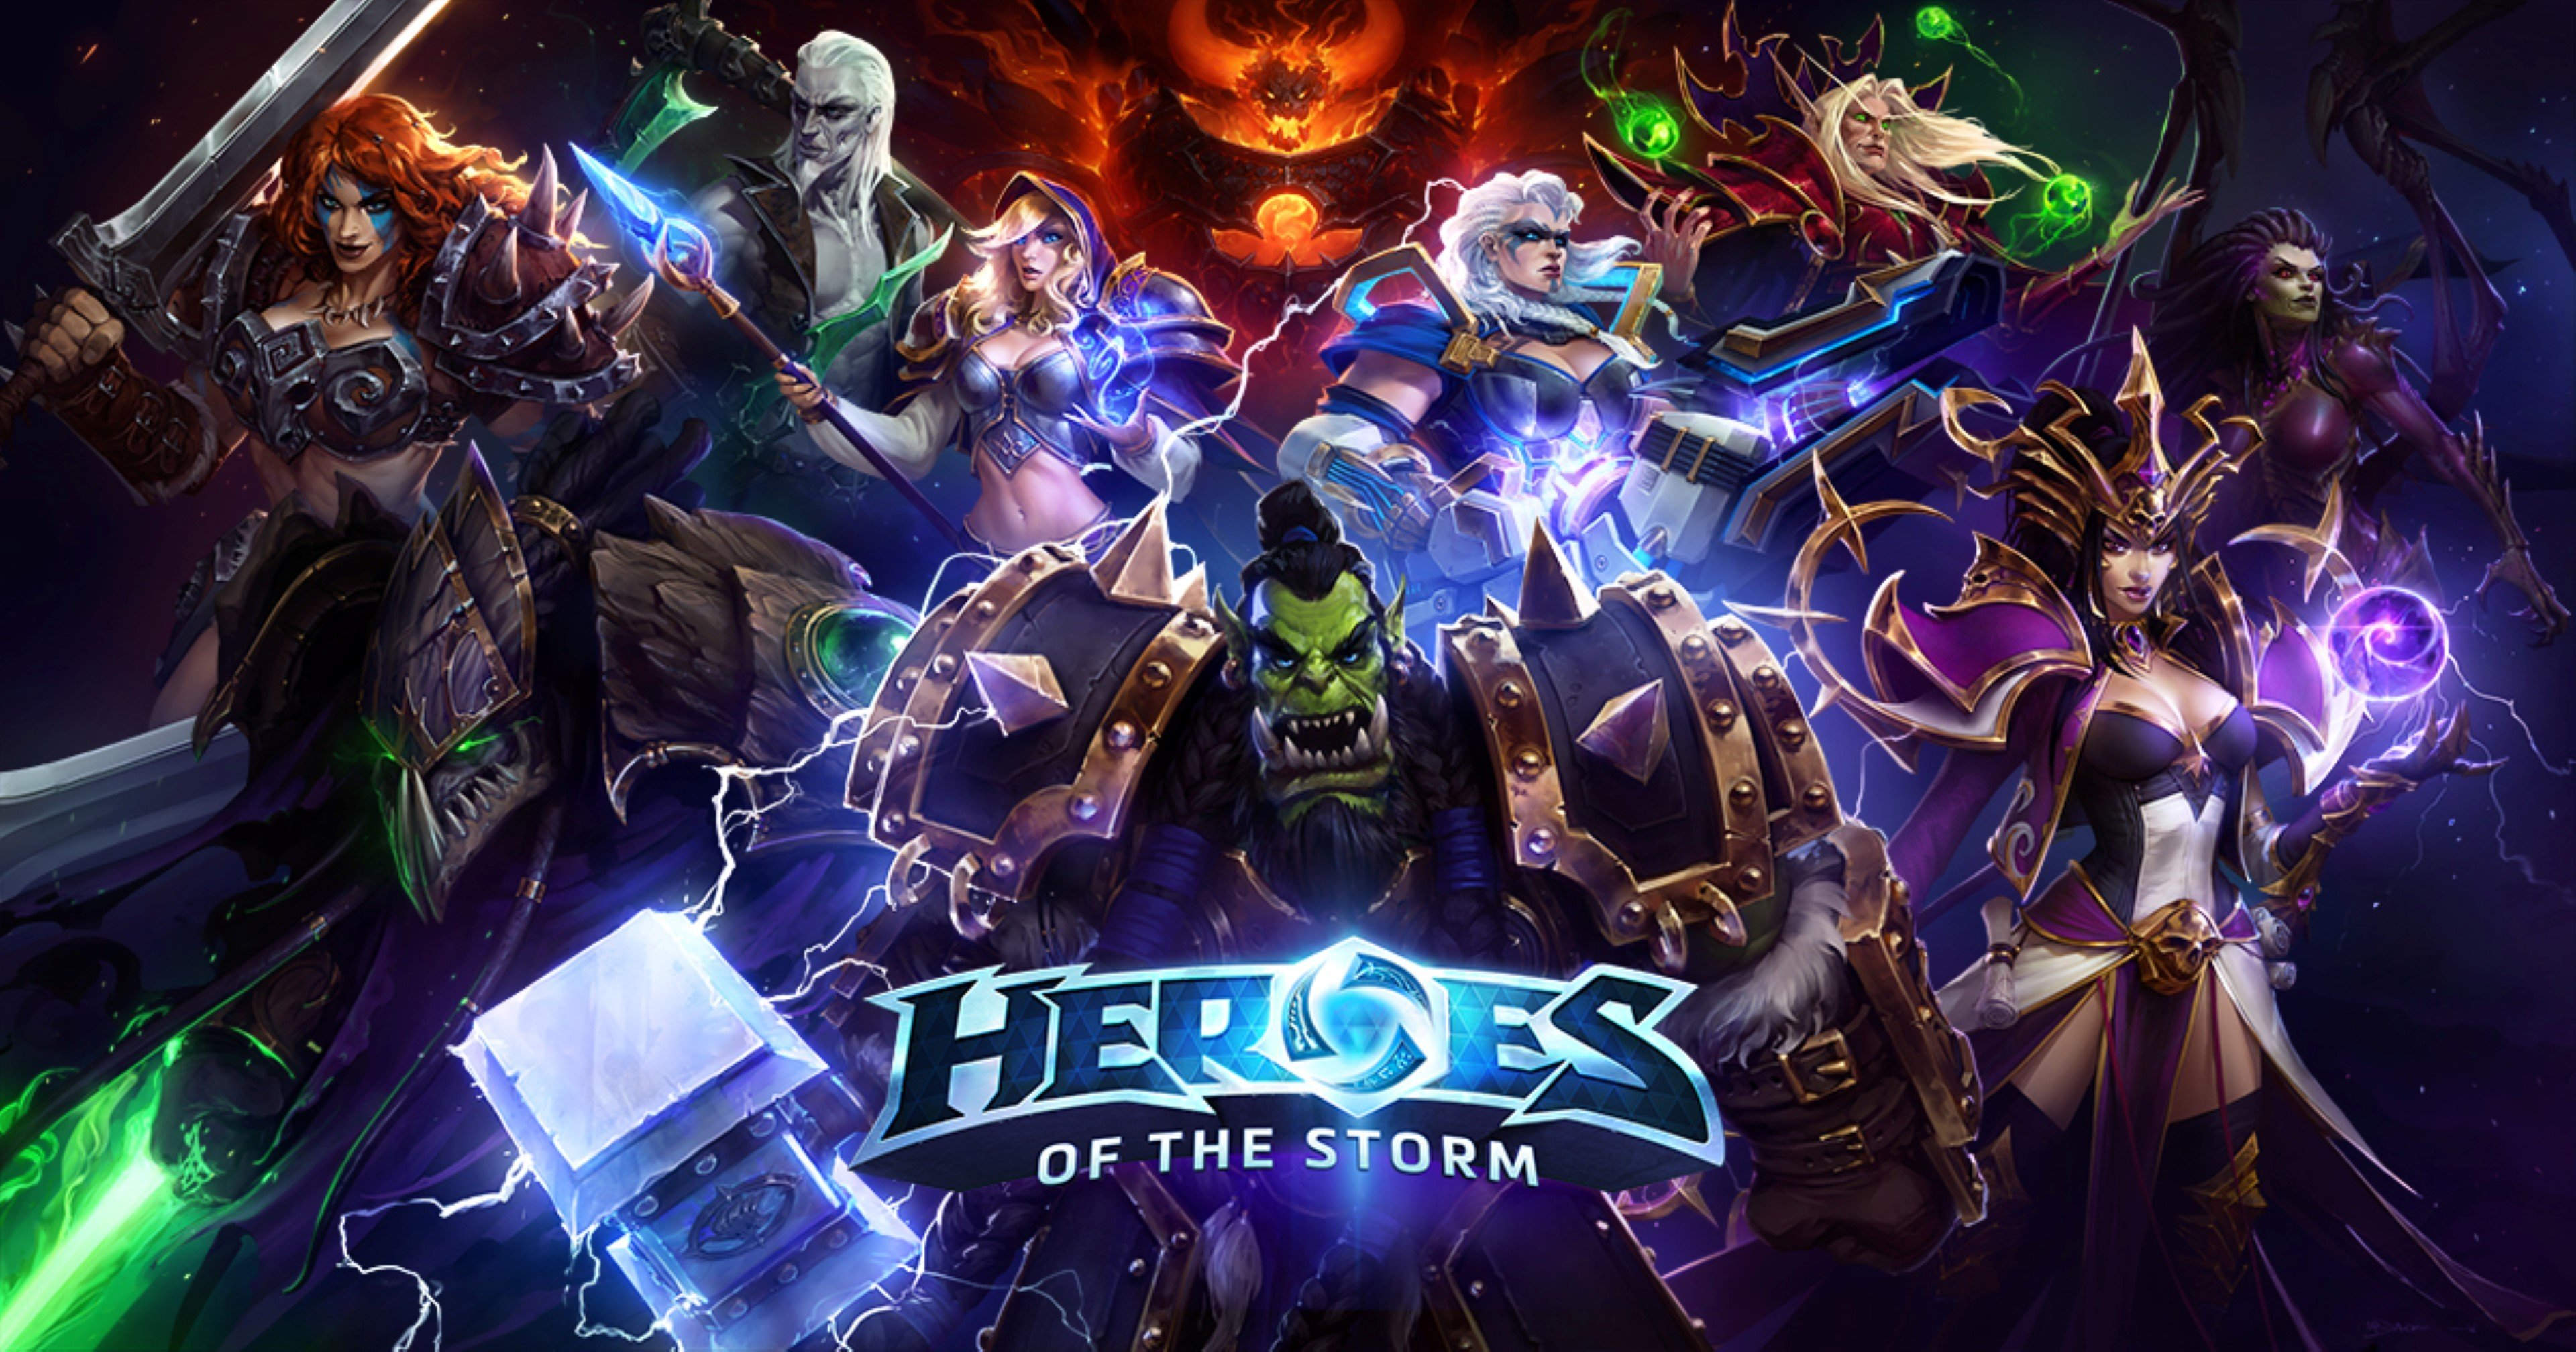 Blizzard entertainment heroes of the storm hd wallpapers - 2 0 wallpaper ...